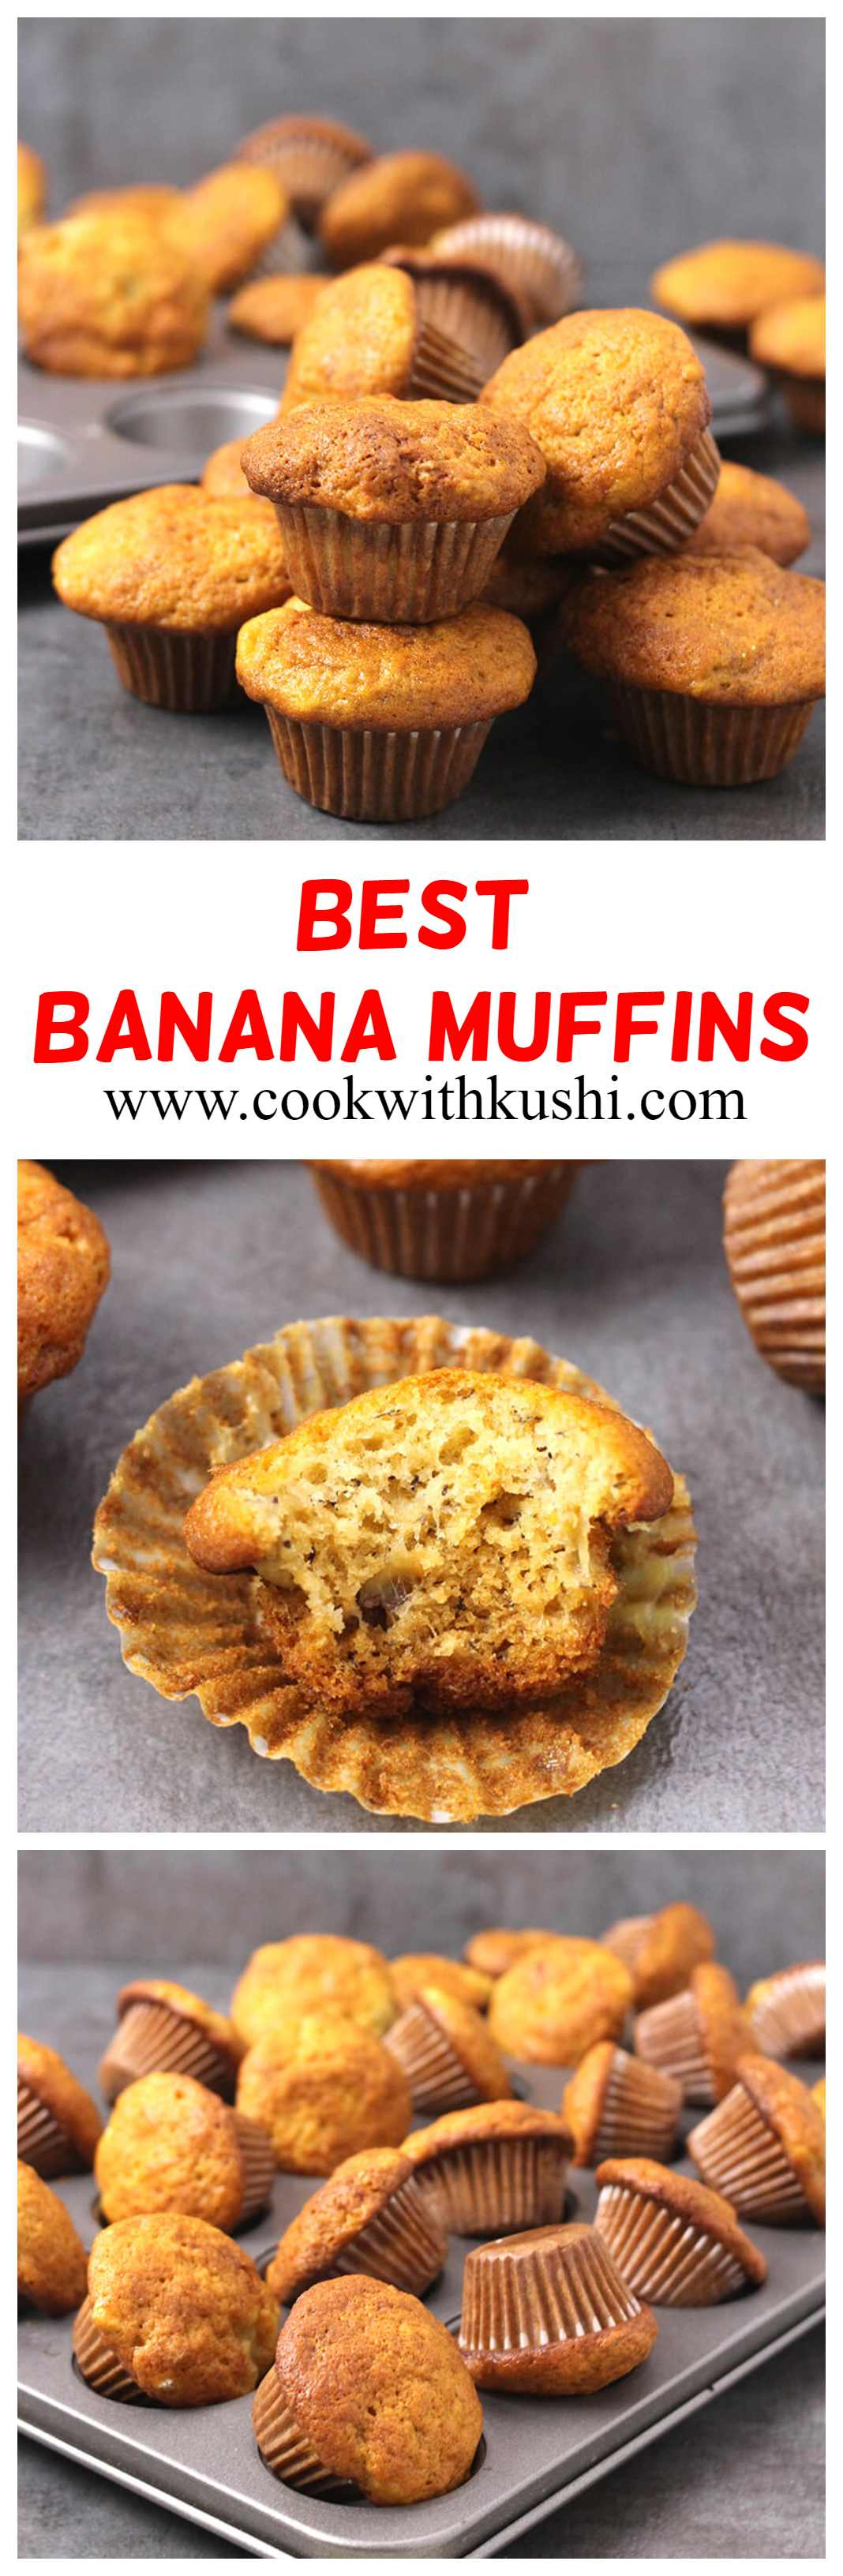 Banana Muffins / Breakfast Muffins / Chocolate Chip Muffins / Mini Muffins / Blueberry Muffins / Kids Friendly Recipes / SUmmer Recipes / Lunchbox recipes / Breakfast recipes / overripe bananas